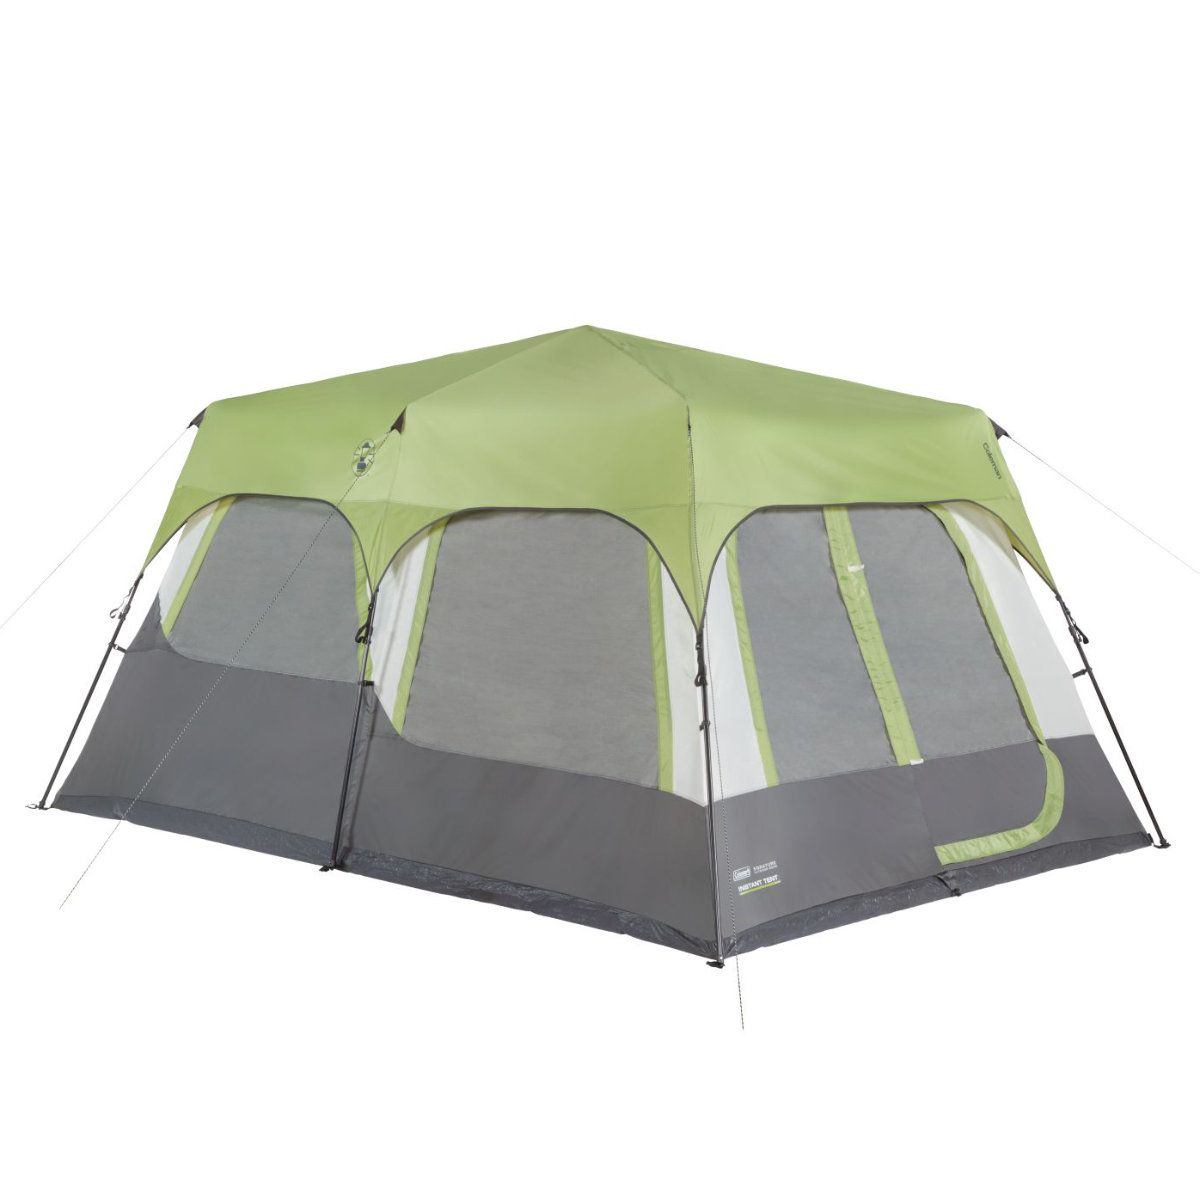 Coleman Instant Cabin 10 Tent With Fly 10 Person 825259 Cabin Tent Coleman Tent 10 Person Tent